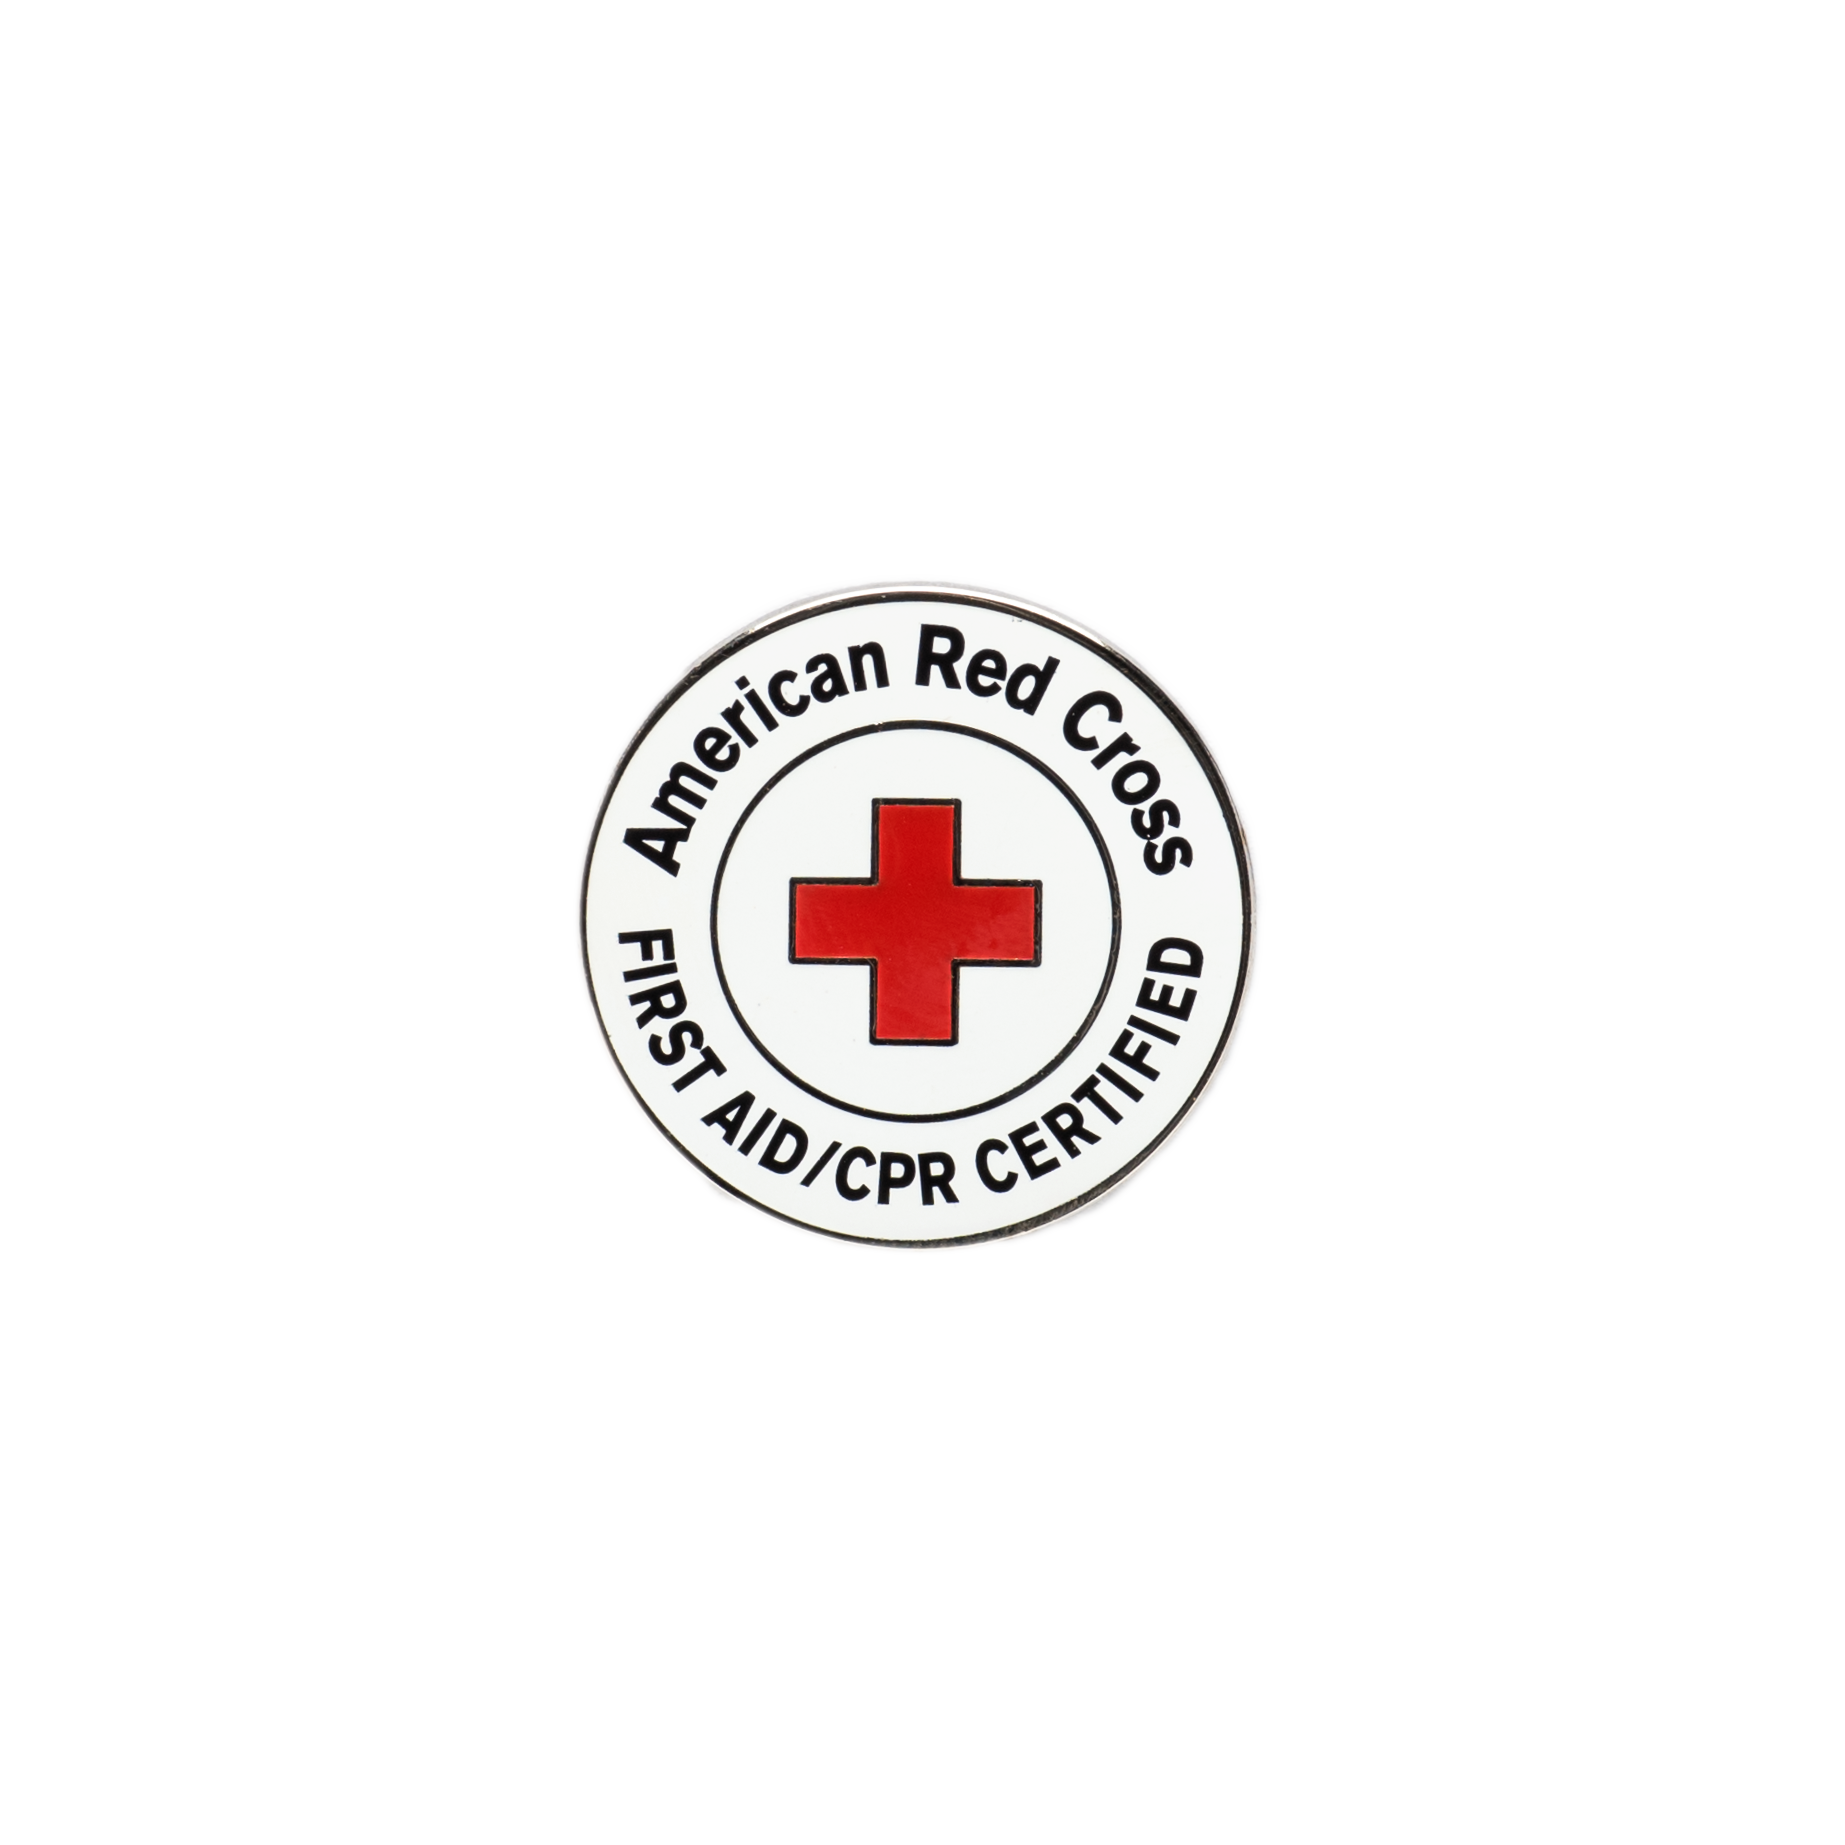 Red Cross First Aid Certification Free Professional Resume